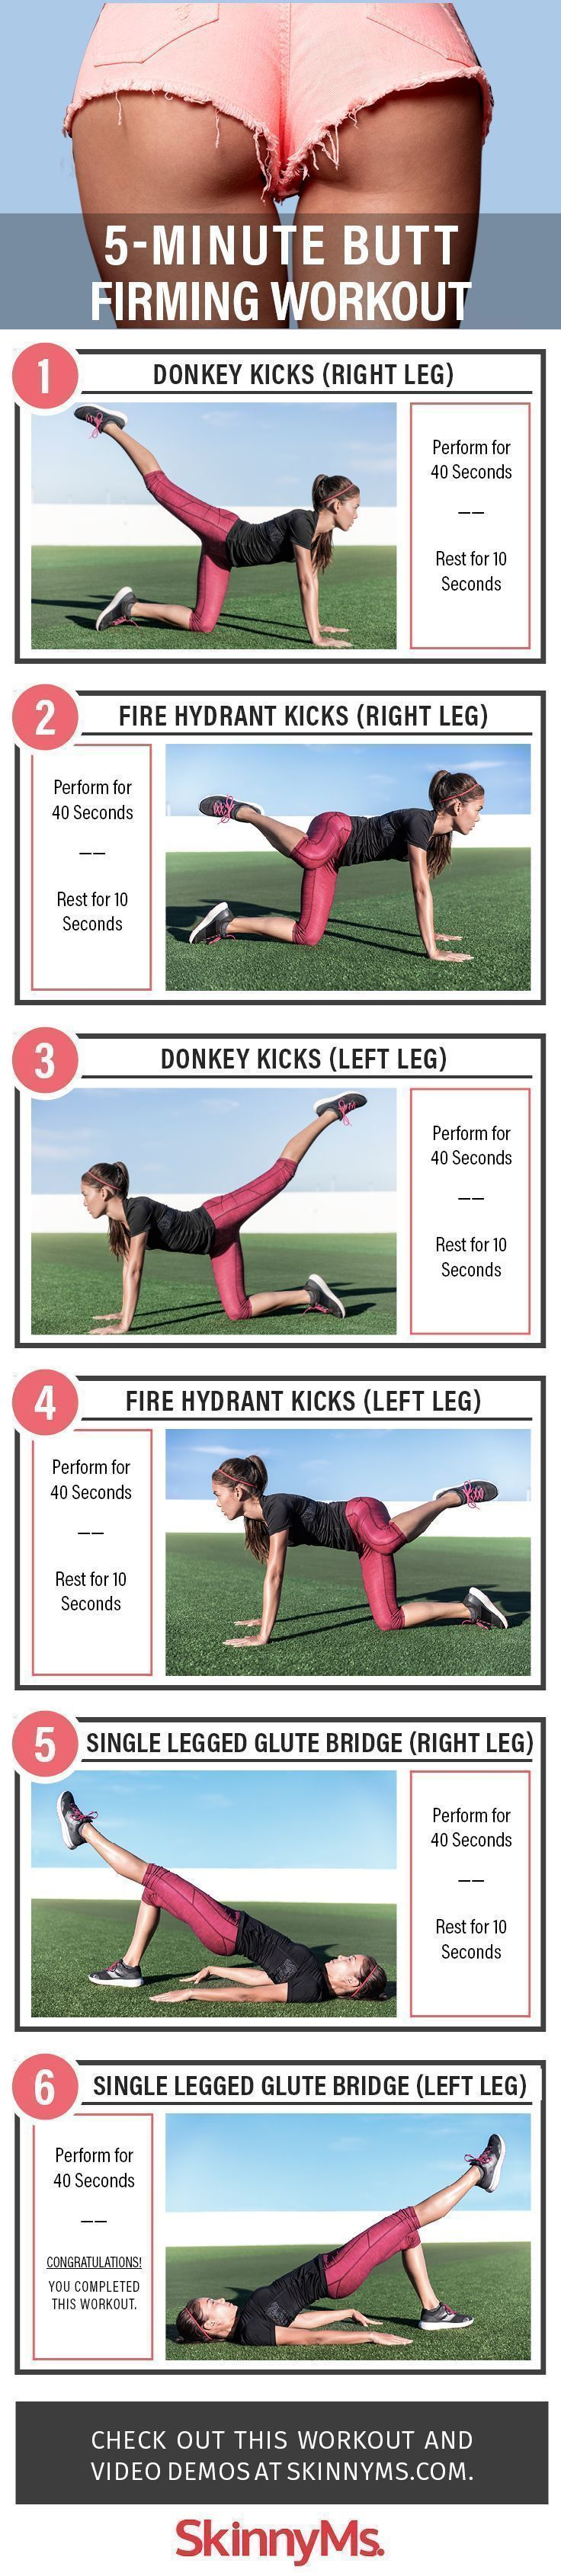 5-Minute Butt Firming Workout | Posted By: CustomWeightLossProgram.com